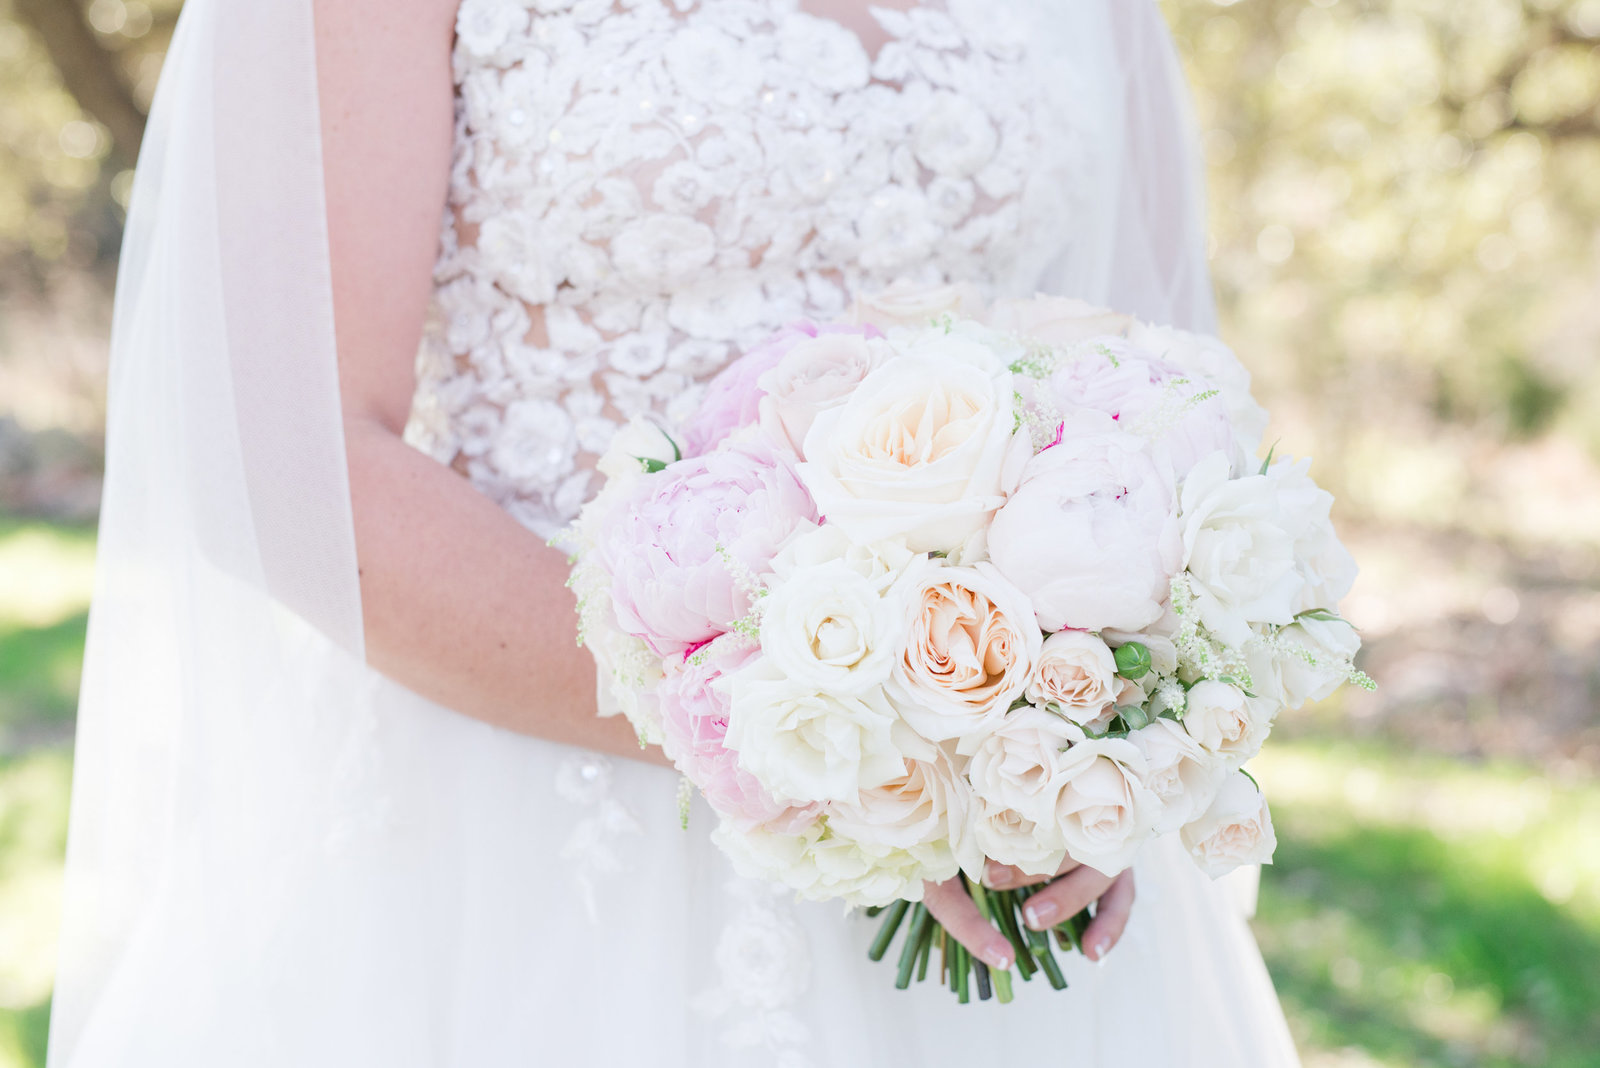 a white and blush wedding bouquet for a bride at The Springs in Georgetown, Texas